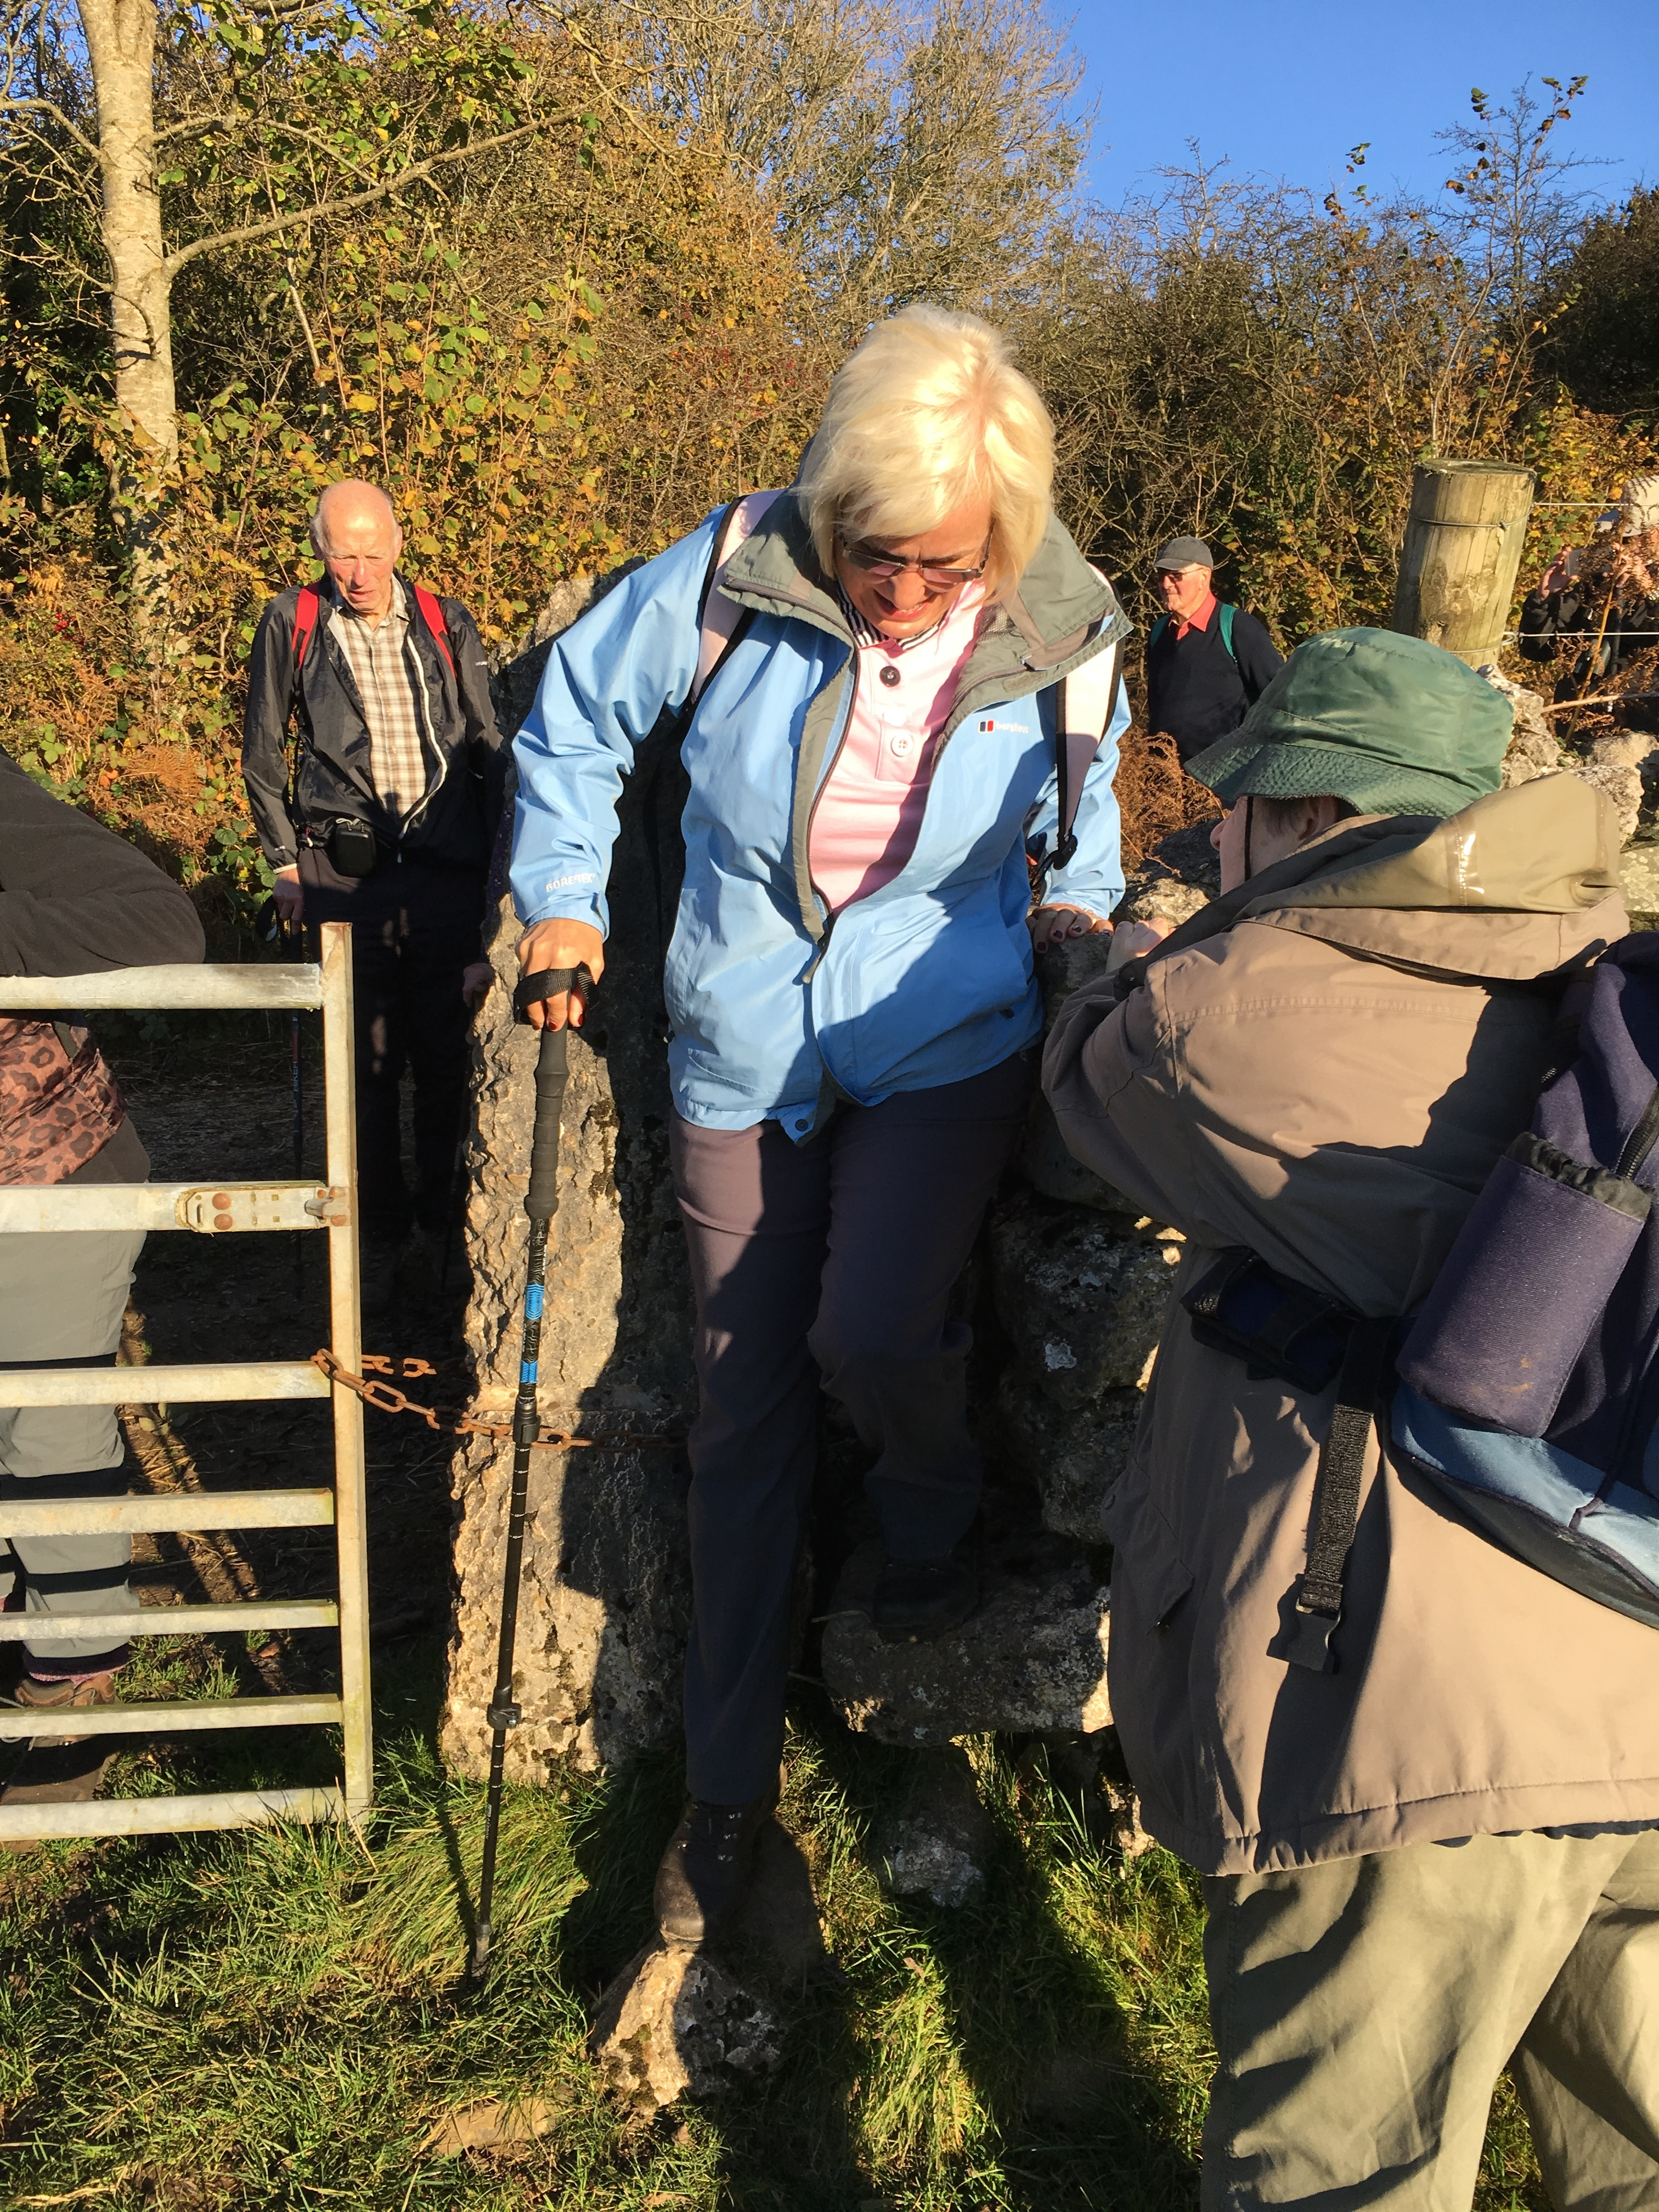 at the stile